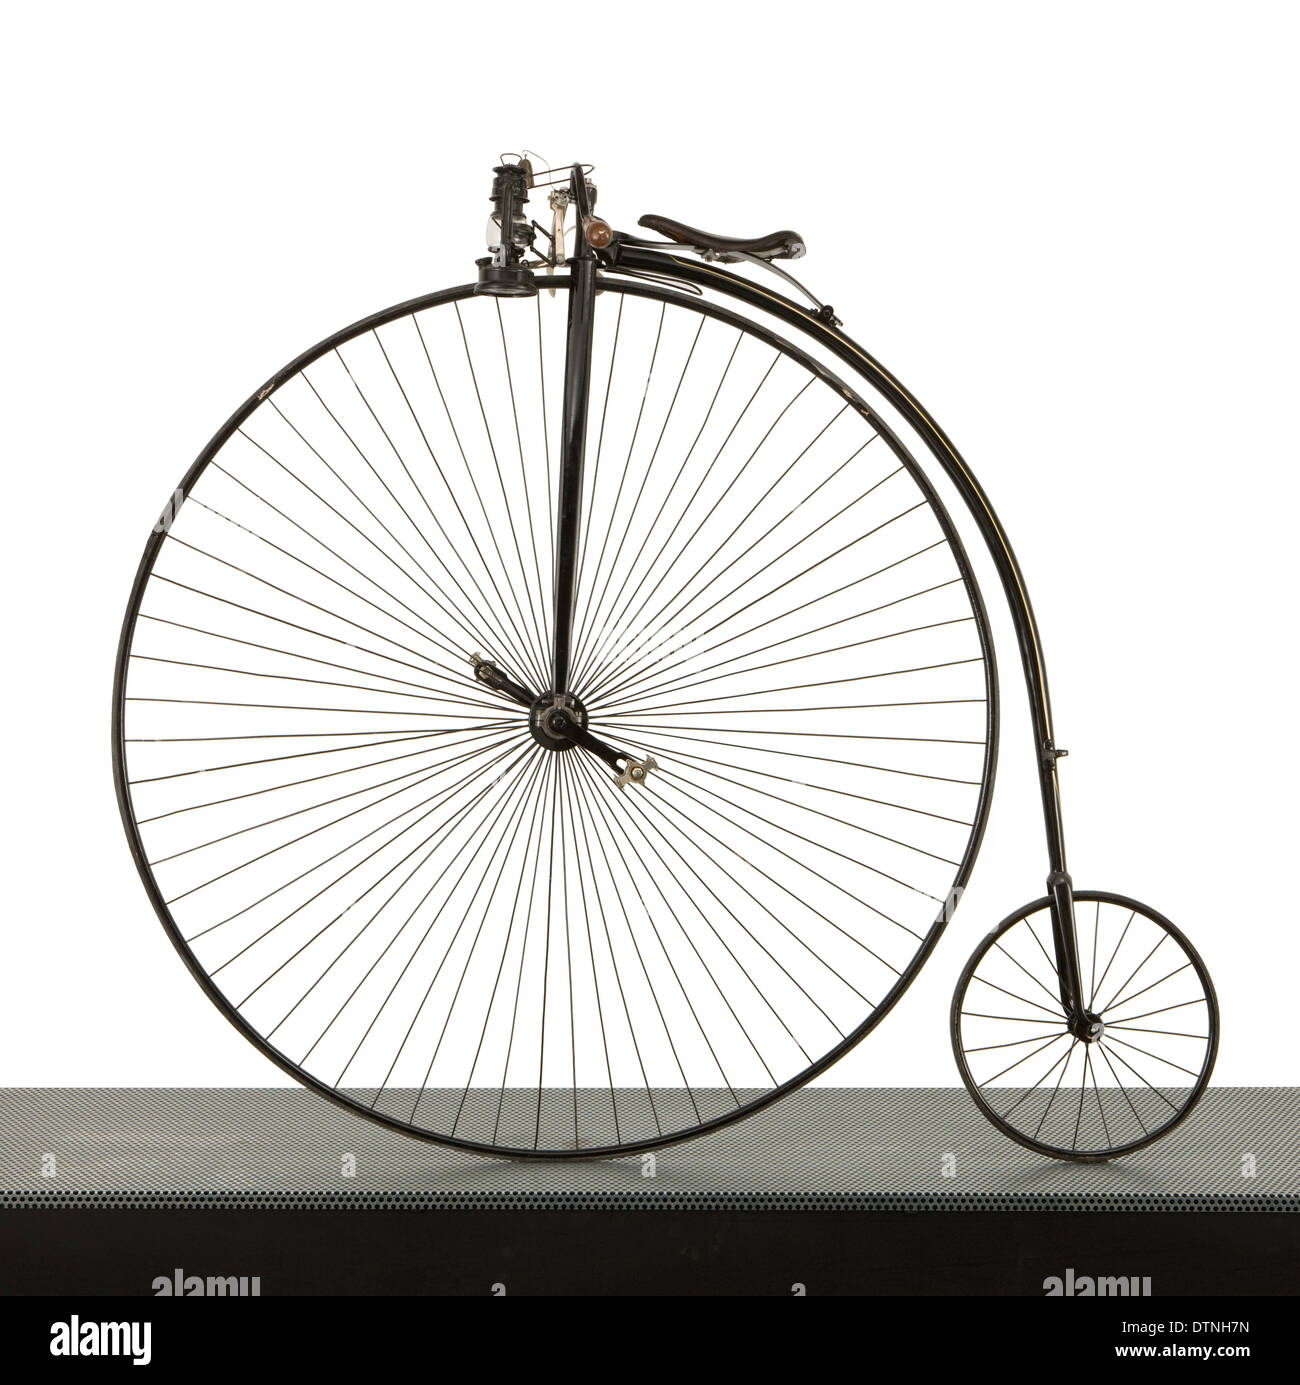 A 52 inch Ordinary bicycle, cerca 1880, commonly known as a penny farthing. - Stock Image